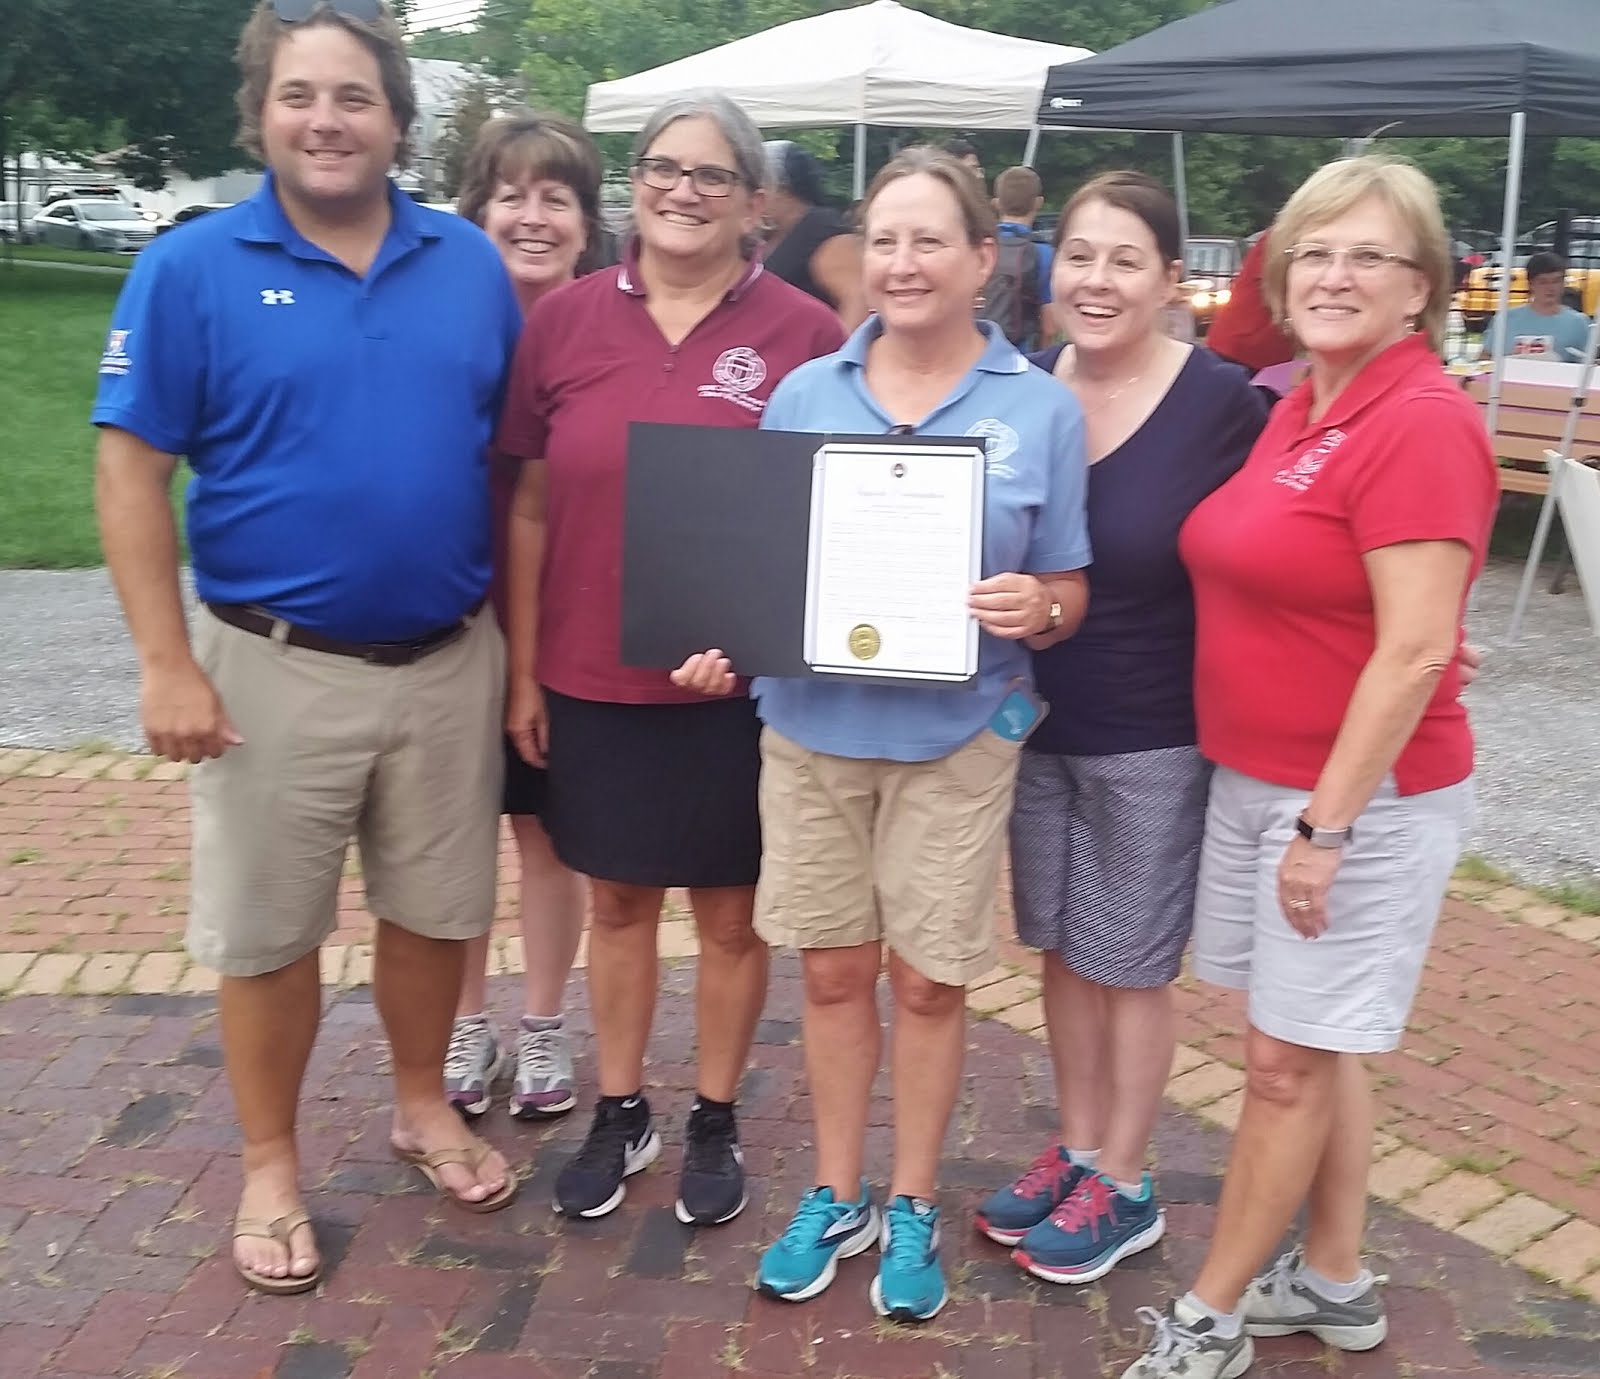 ben yingling presents a proclamation to the gfwc jr women s club of westminster